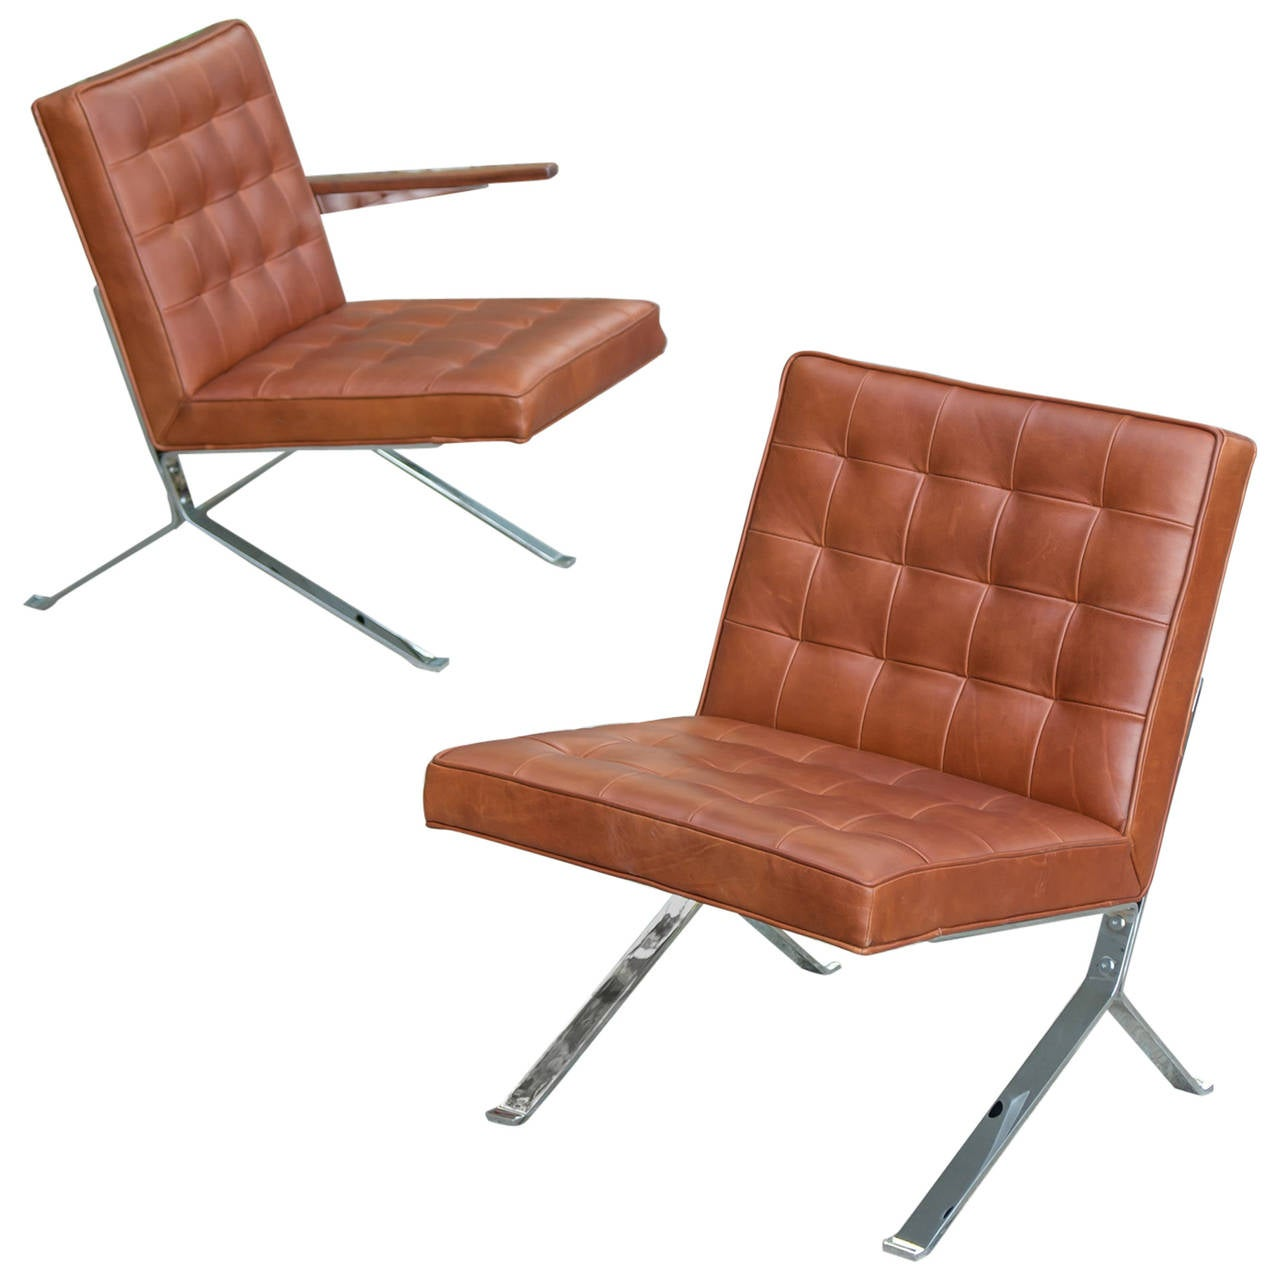 american leather swing chair covers cheap nz vintage lounge chairs by the u s royal metal